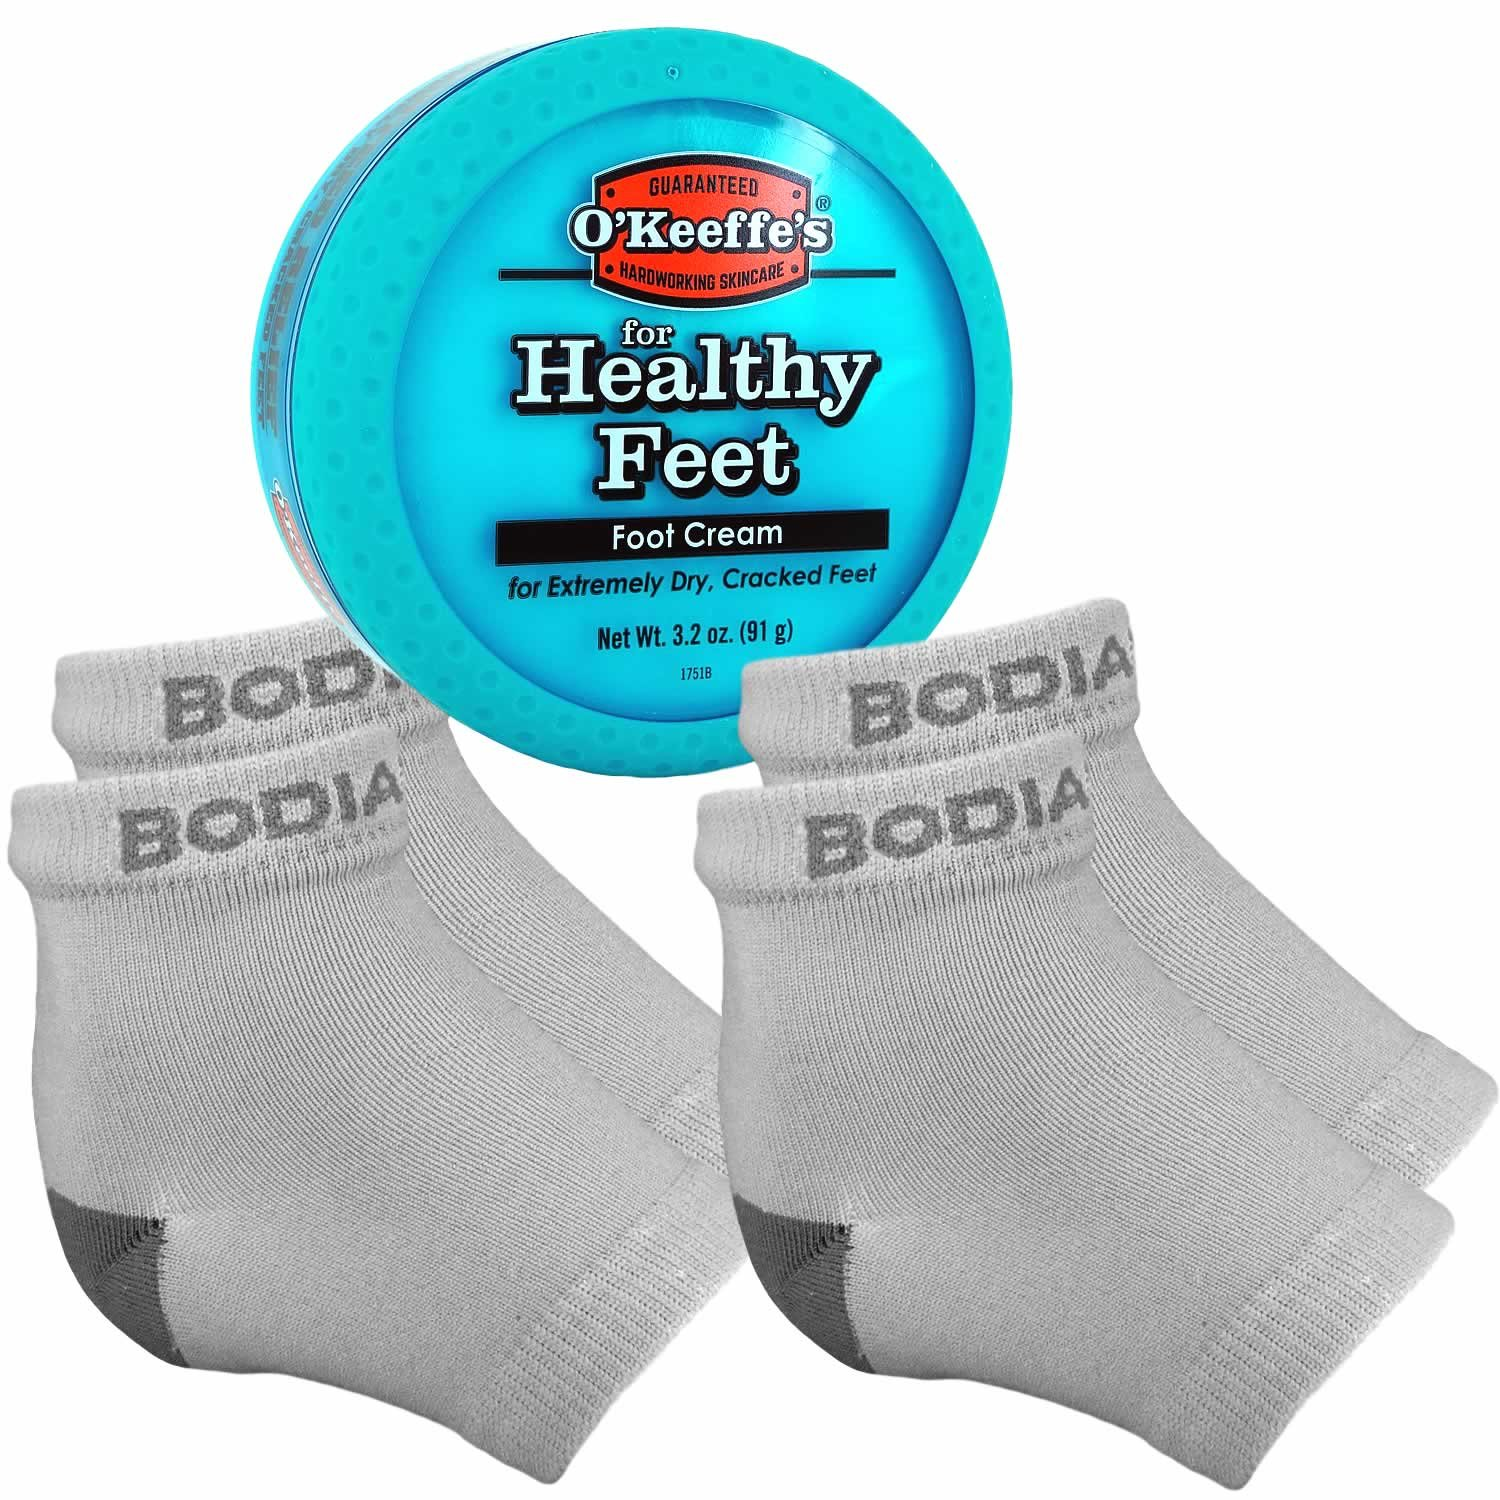 Dry Cracked Heels Repair Bundle with Open Toe Moisturizing Silicone Gel Heel Socks (2 Pairs, Gray) and O'Keeffe's Healthy Feet Cream Jar for Home Foot Skin Care